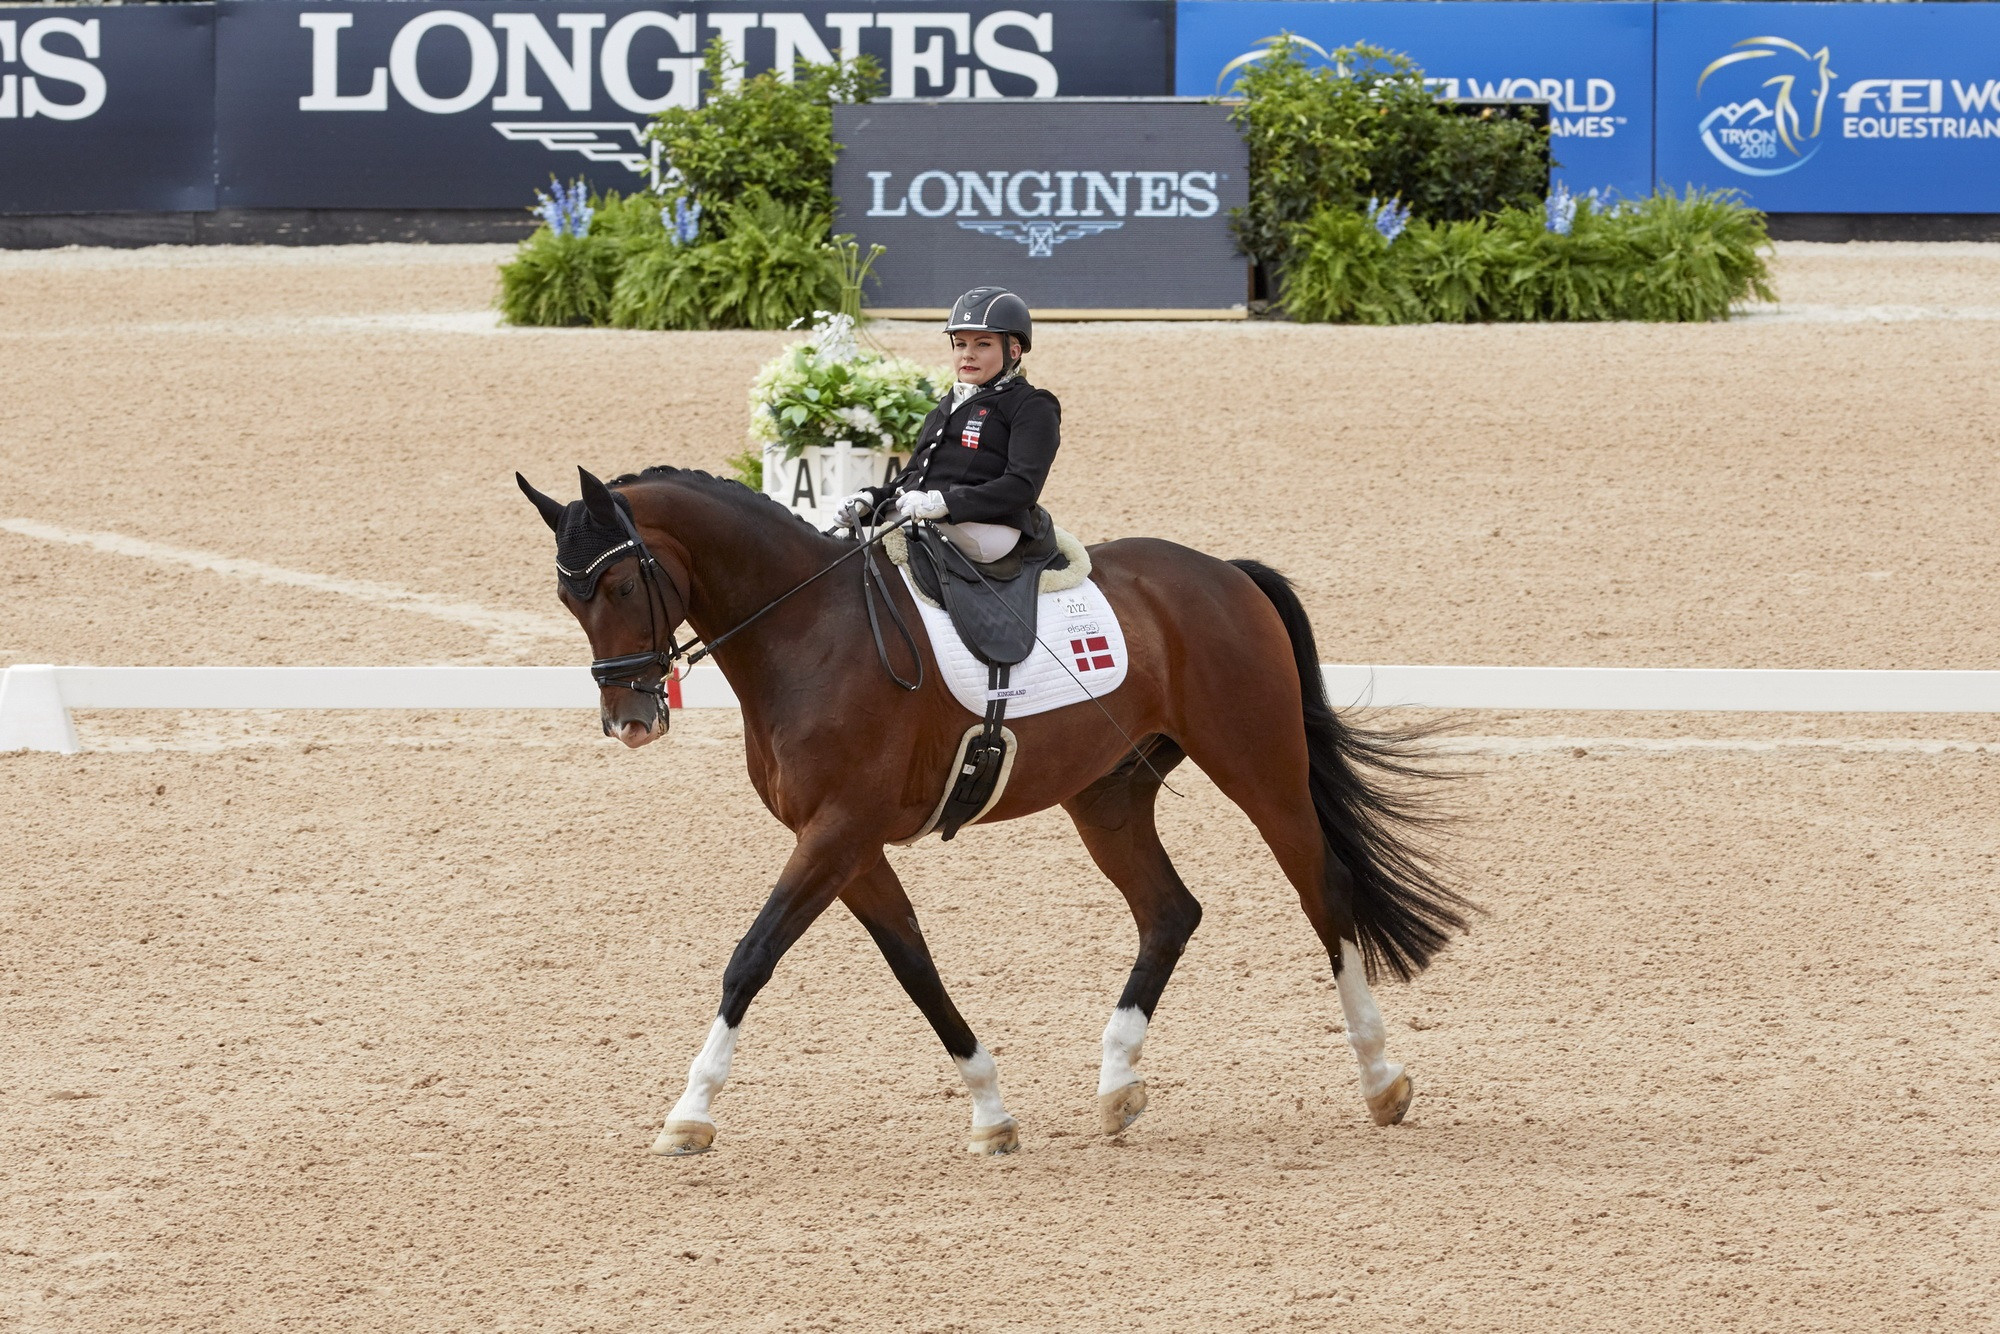 Danish Paralympian Kaastrup takes her first global crown at World Equestrian Games